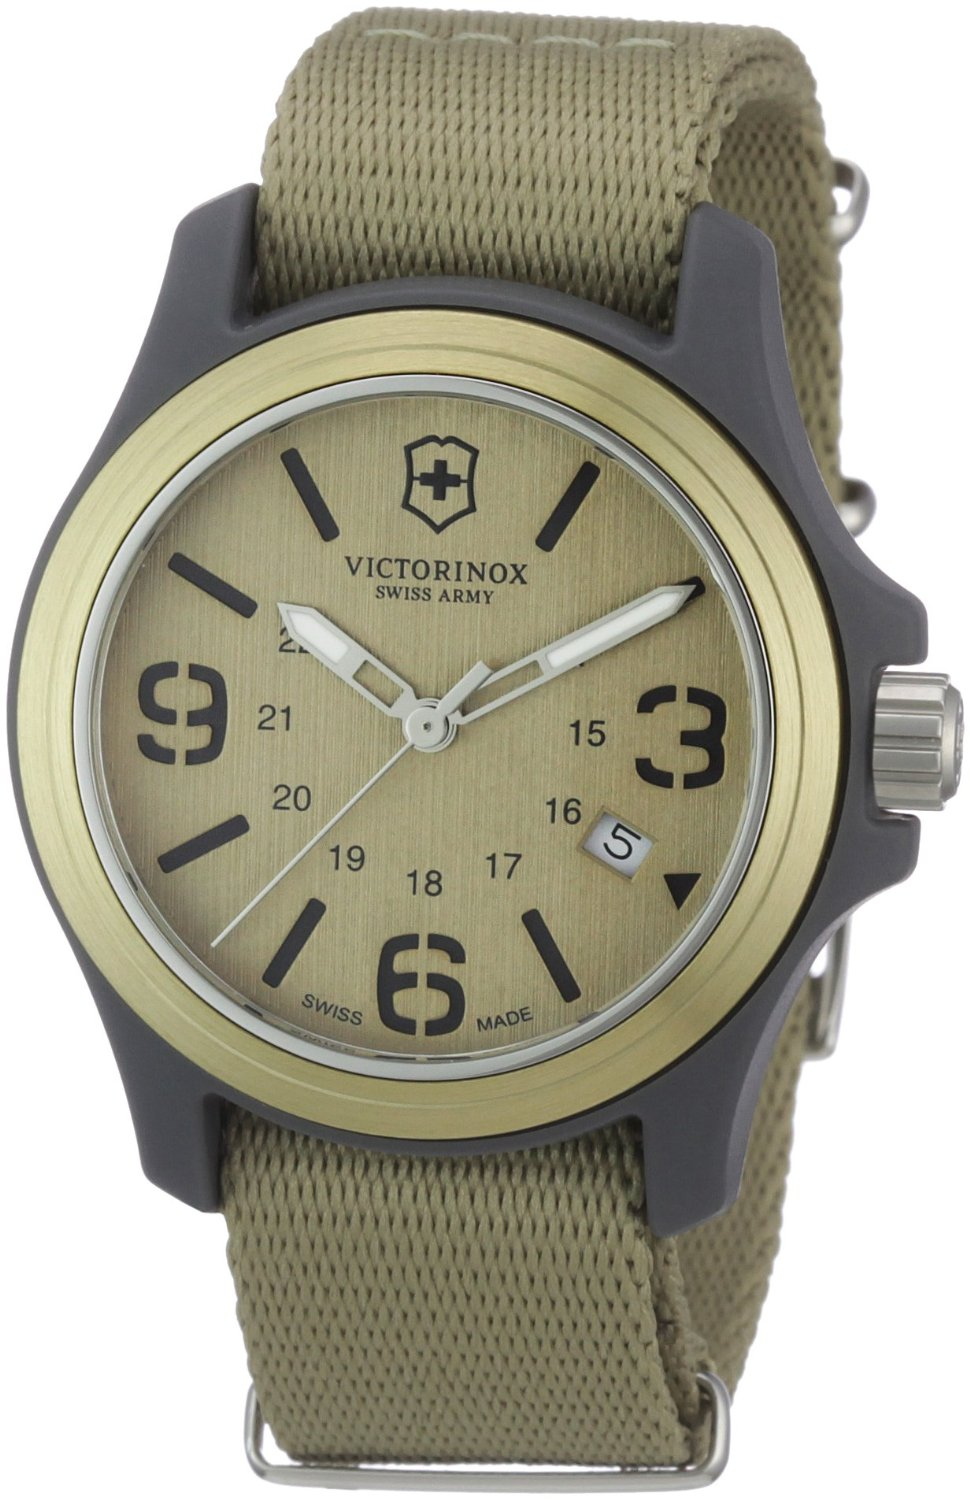 Victorinox Swiss Army Original Green Dial and Strap 241516 Men s Watch c216840713